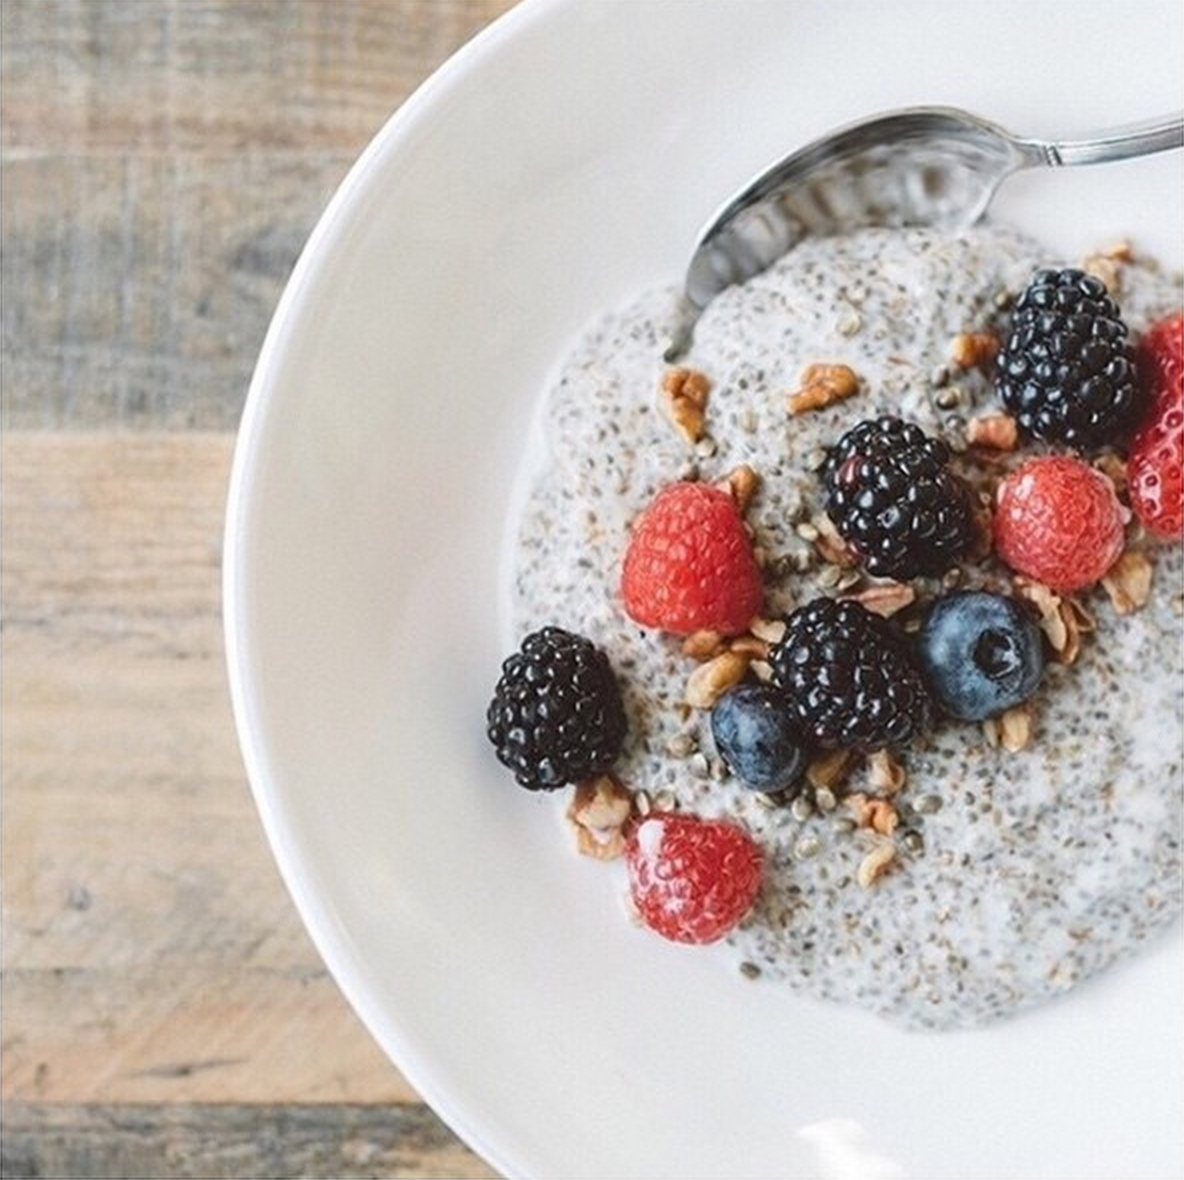 Warm Chia Flax Pudding Kelly Leveque